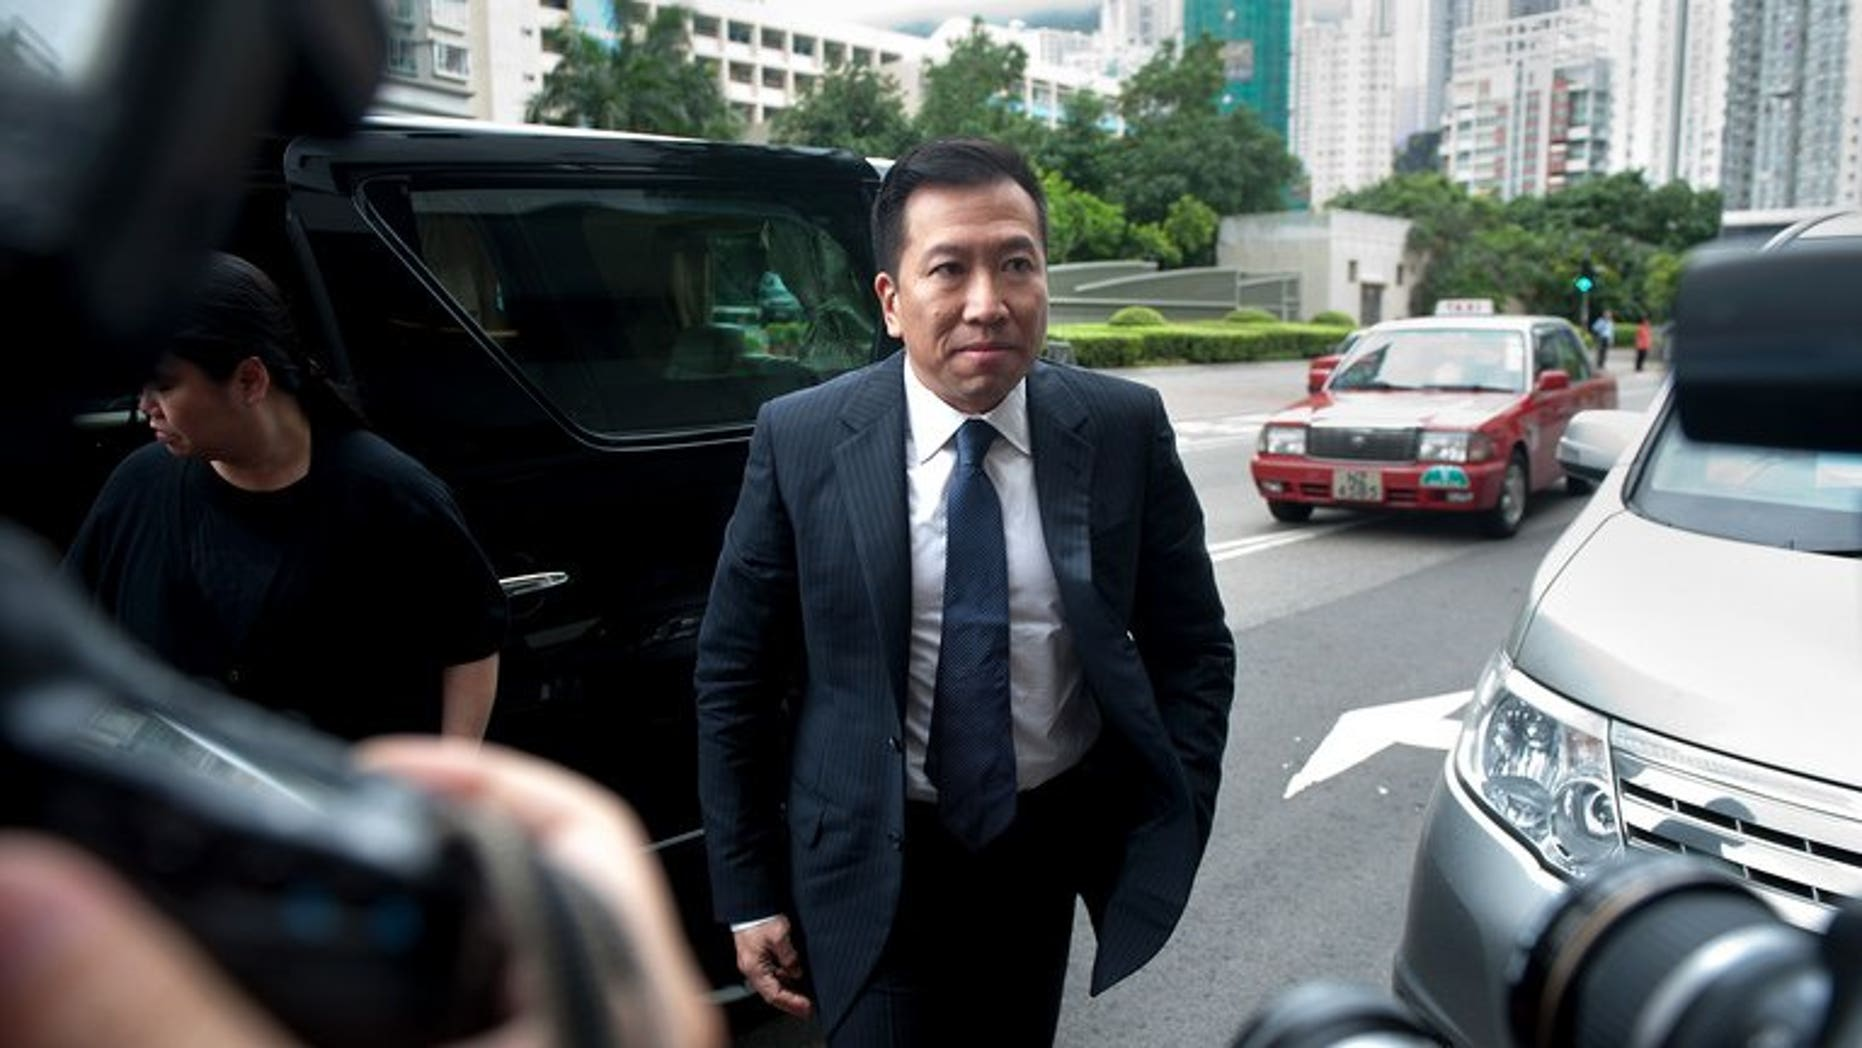 Former Feng shui master Tony Chan Chun-chuen arrives at the Eastern Court in Hong Kong on May 17, 2012. A Hong Kong court has sentenced Chan who claimed to be the lover of late billionaire Nina Wang to 12 years in jail after finding him guilty of forging her will.